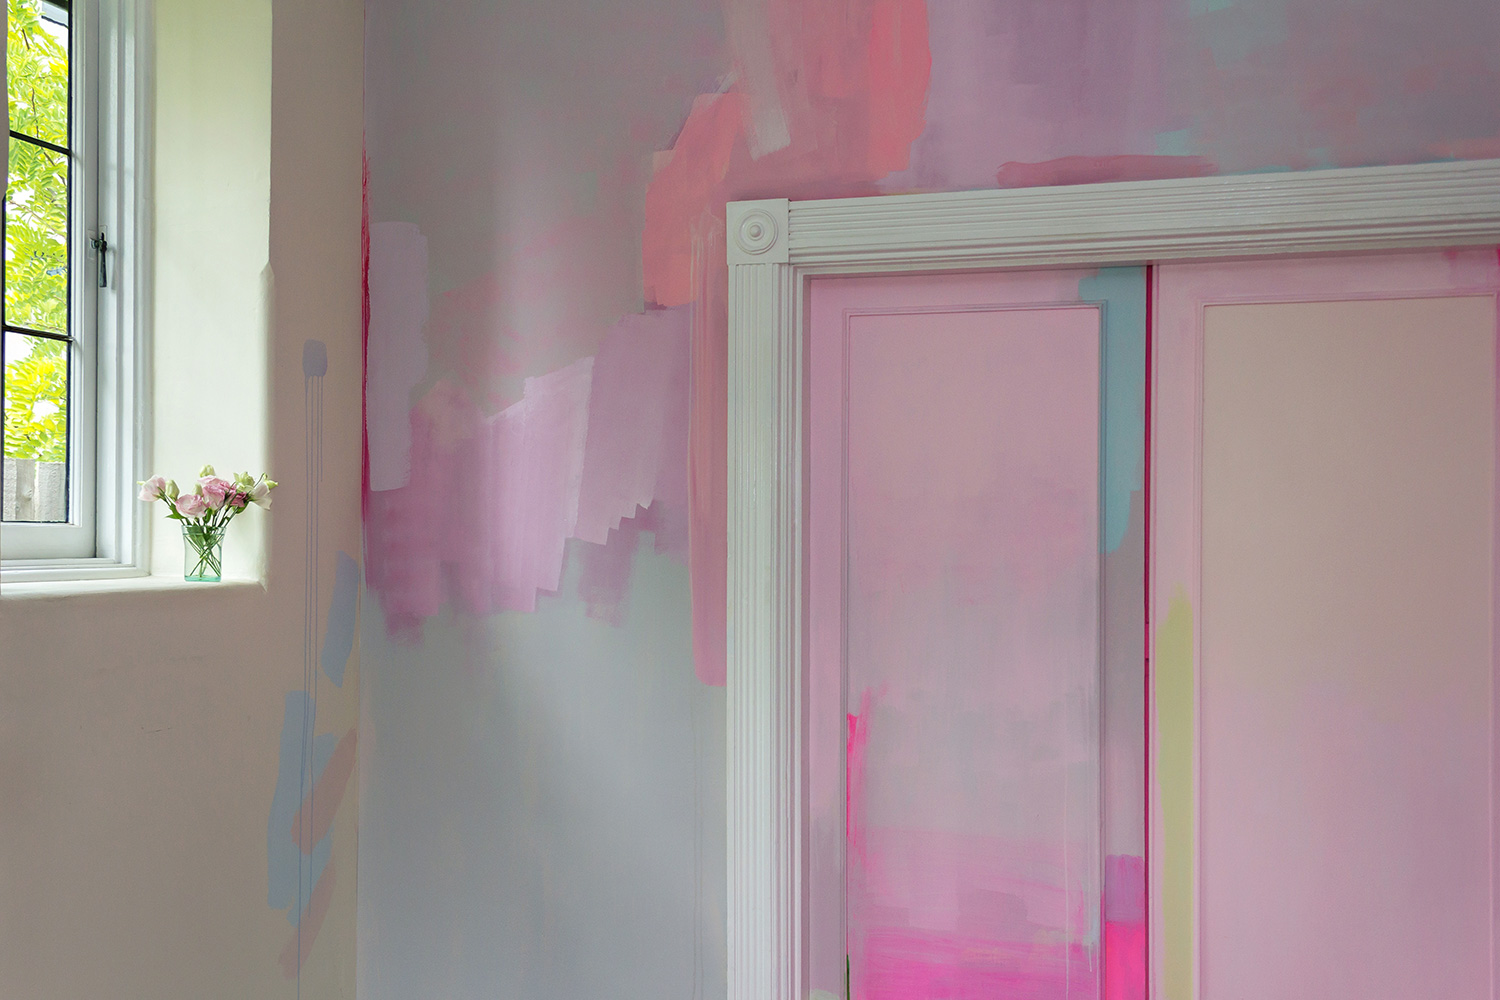 Modern abstract mural features splashes of pastel paint and pops of neon color, pink flowers on the windowsill provide contrast to the flat color.